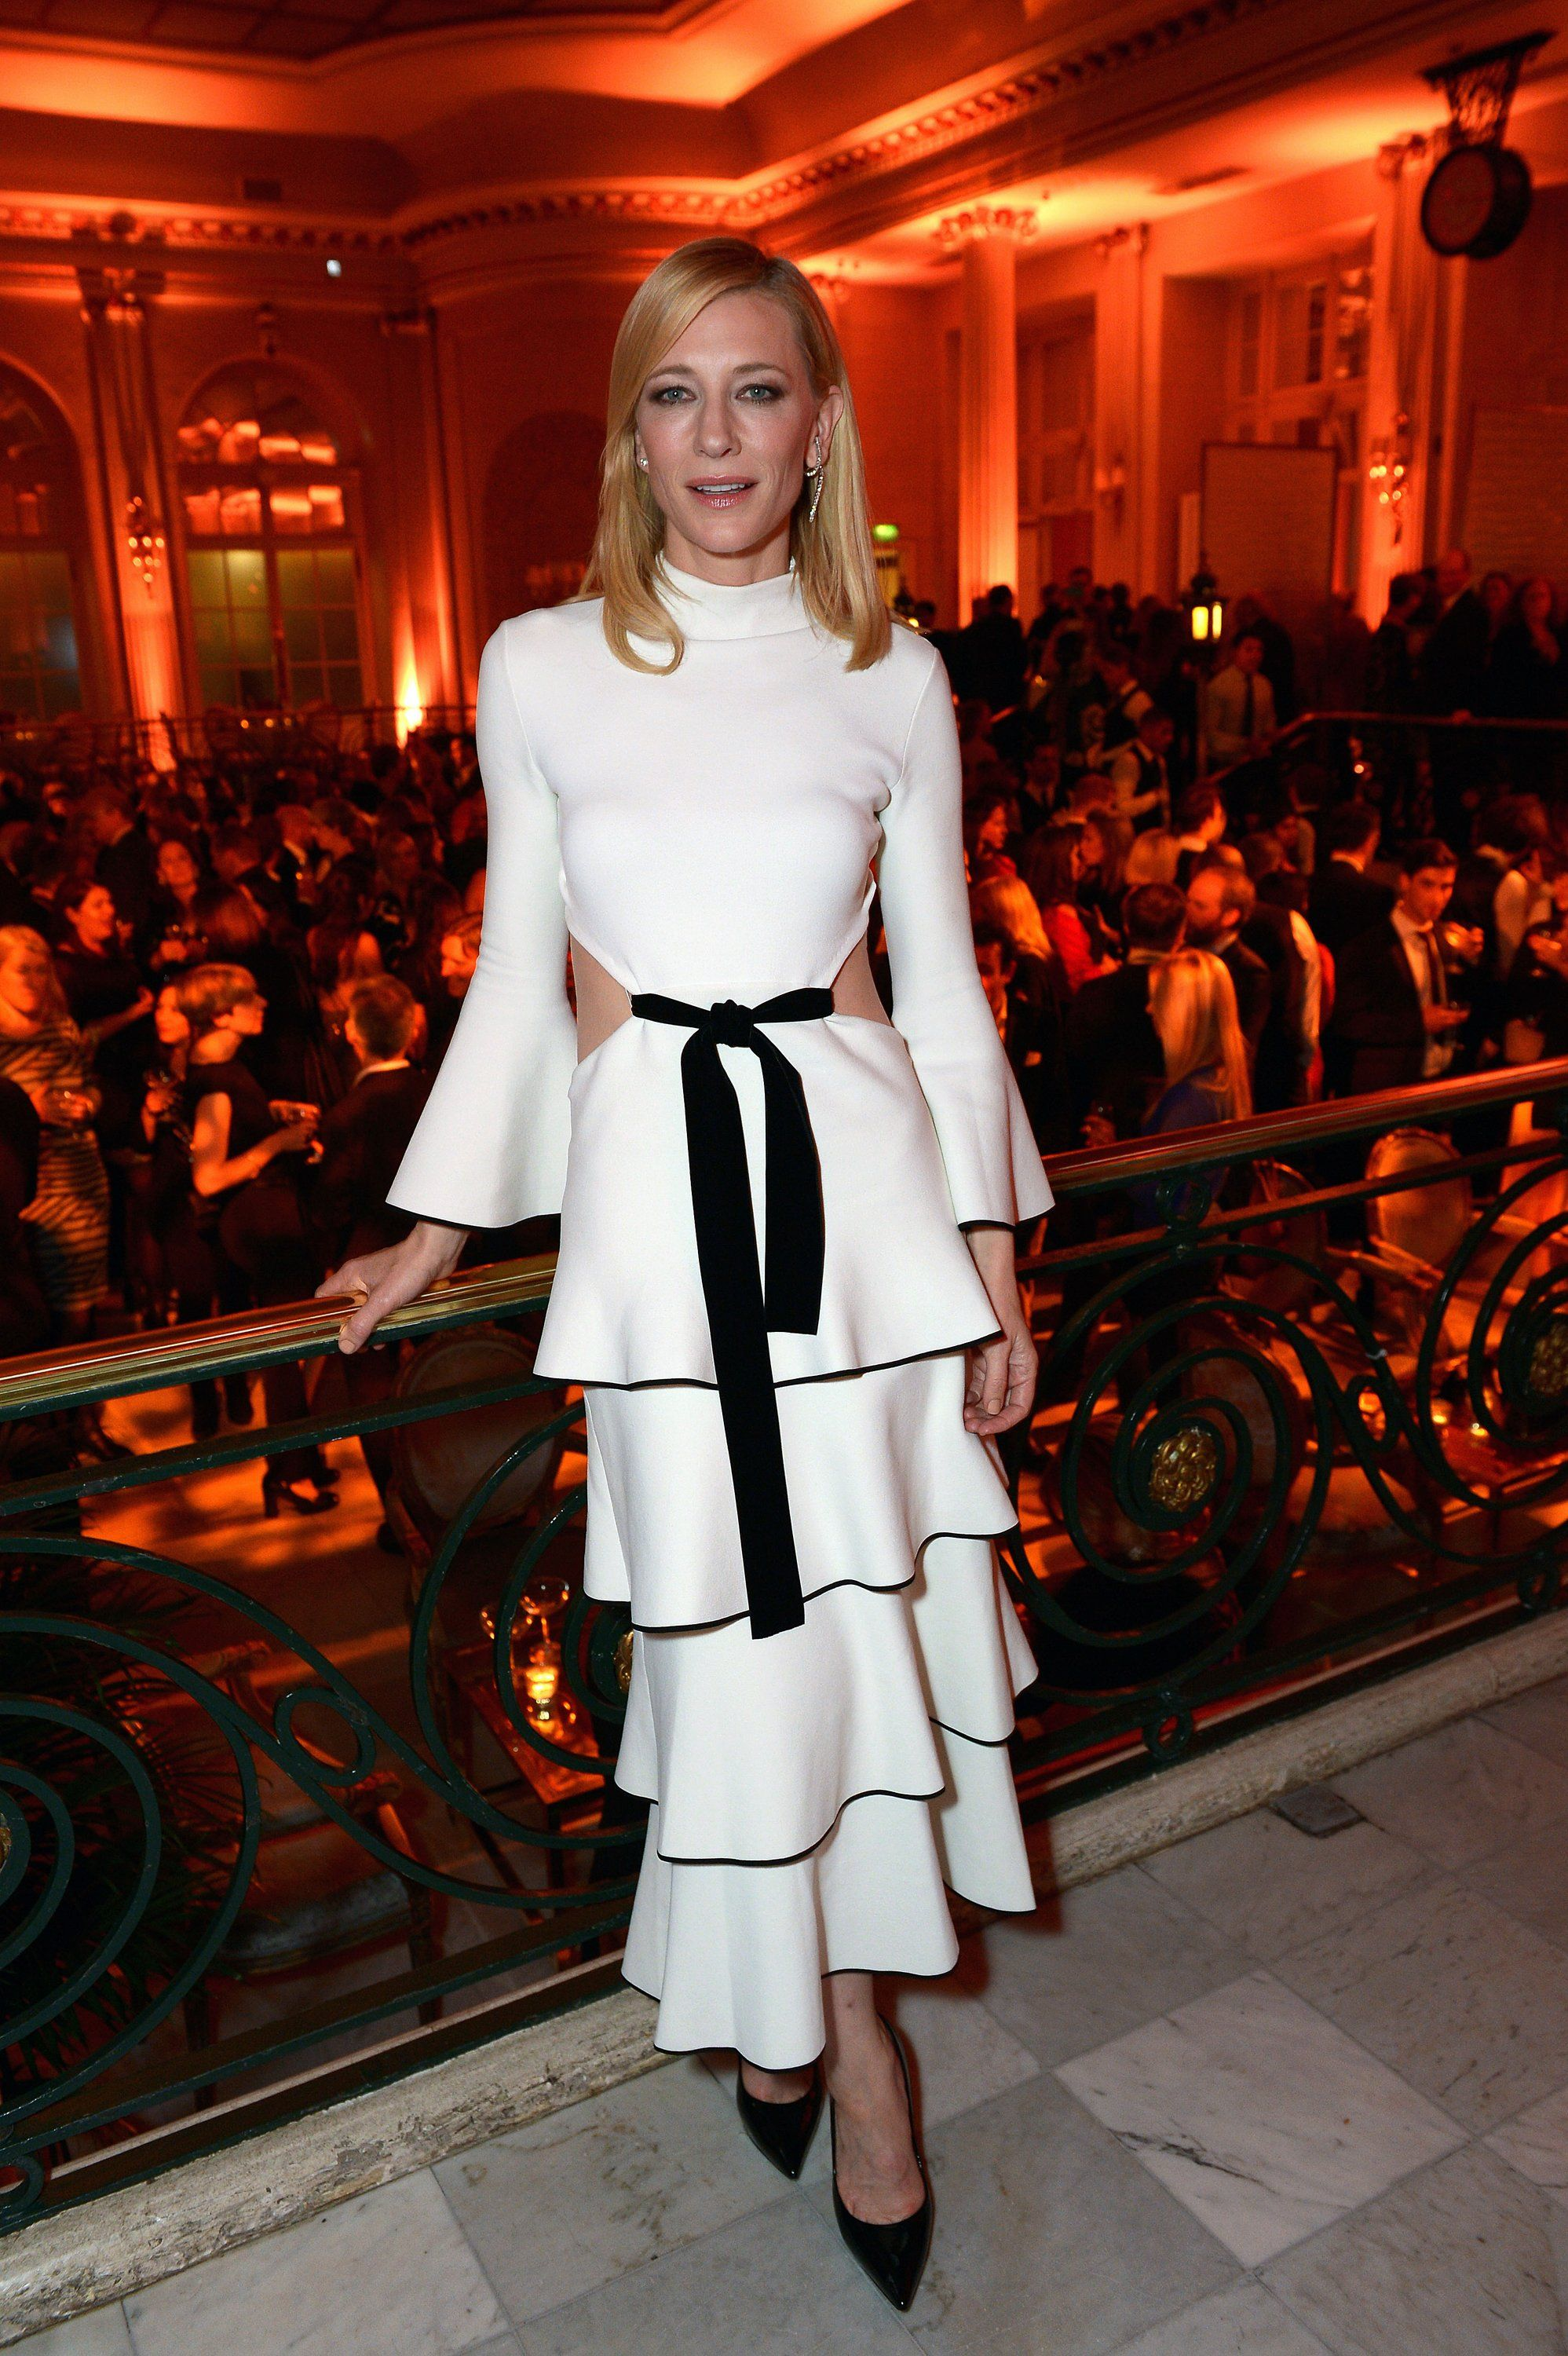 The Academy of Motion Pictures Arts & Sciences - New Members Reception - October 14th, 2015 - 023 - Cate Blanchett Fan | Cate Blanchett Gallery